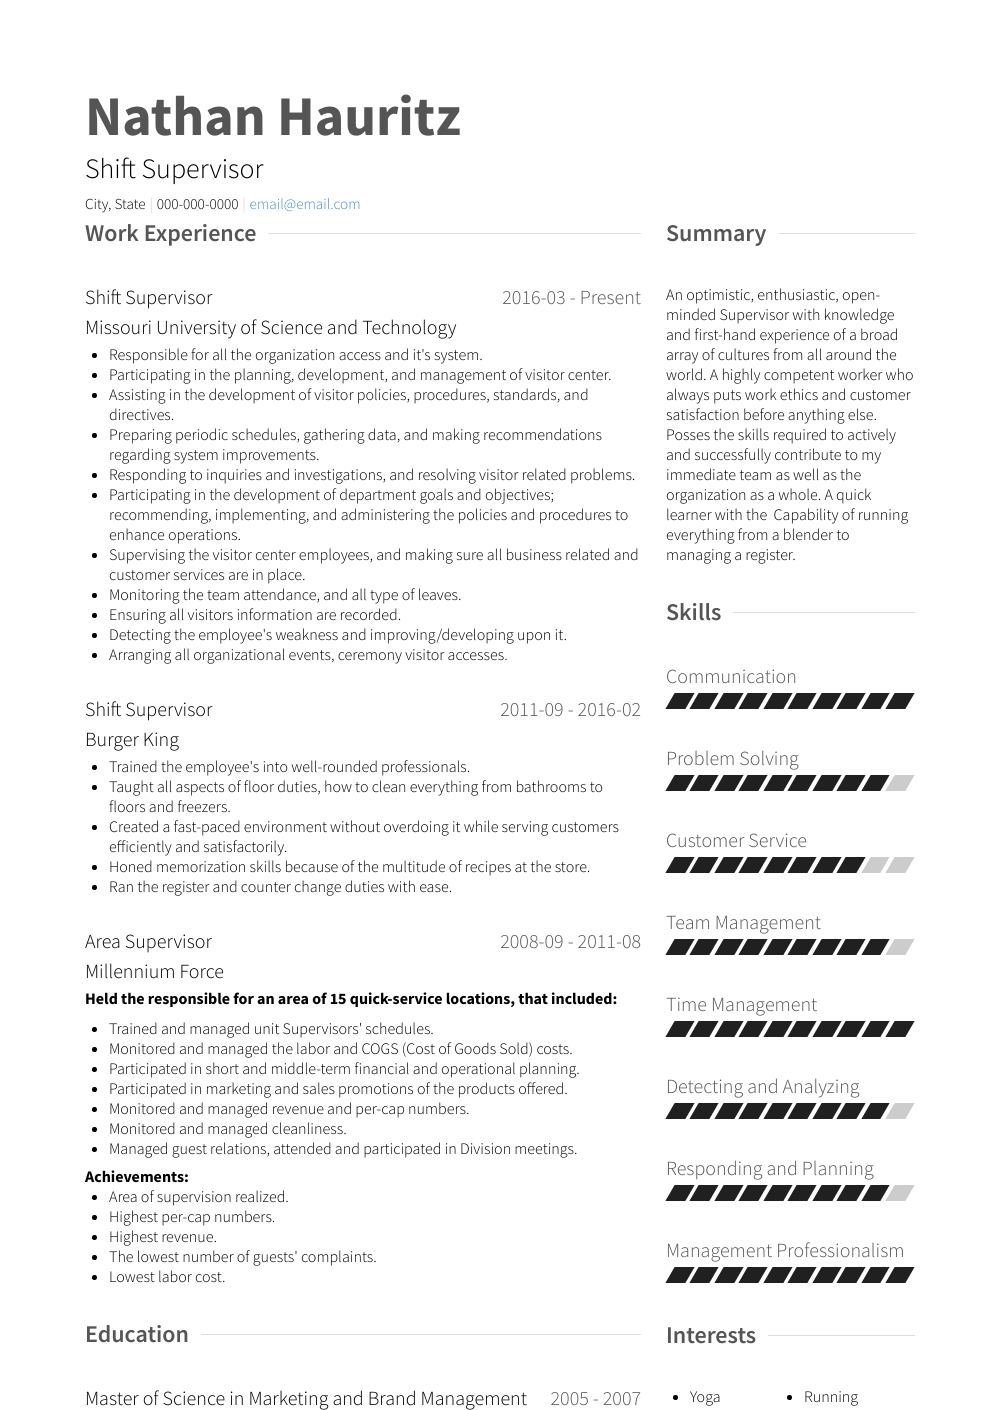 Shift Supervisor - Resume Samples & Templates | VisualCV